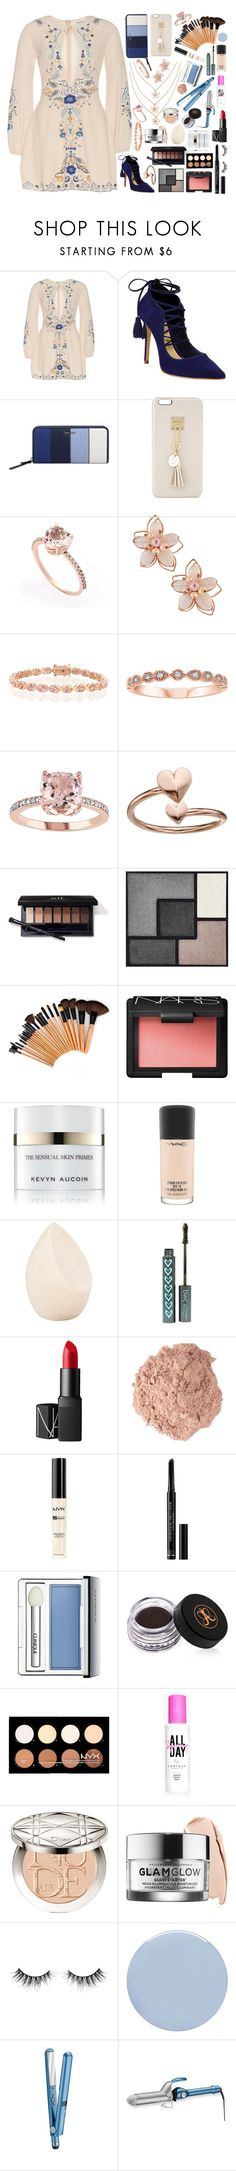 """""""Not My Usual!"""" by sodenoshirayuki-kuran ❤ liked on Polyvore featuring Schutz, Nine West, Iphoria, NAKAMOL, Bling Jewelry, Alex and Ani, Yves Saint Laurent, NARS Cosmetics, Kevyn Aucoin and MAC Cosmetics"""